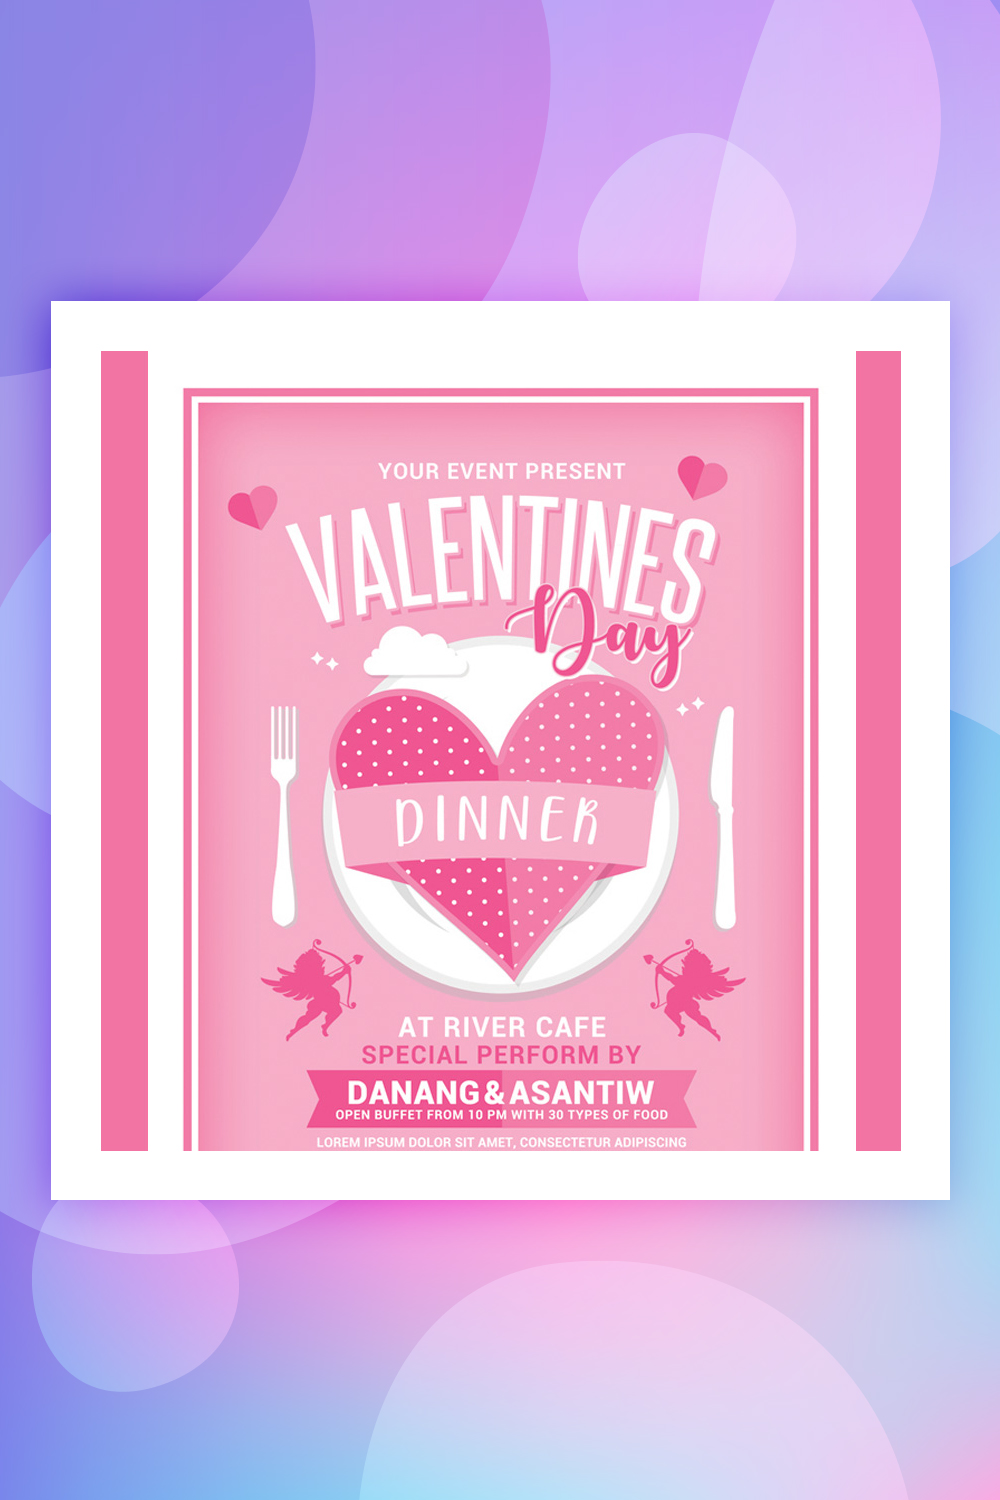 Valentines Day Dinner Corporate Identity Template